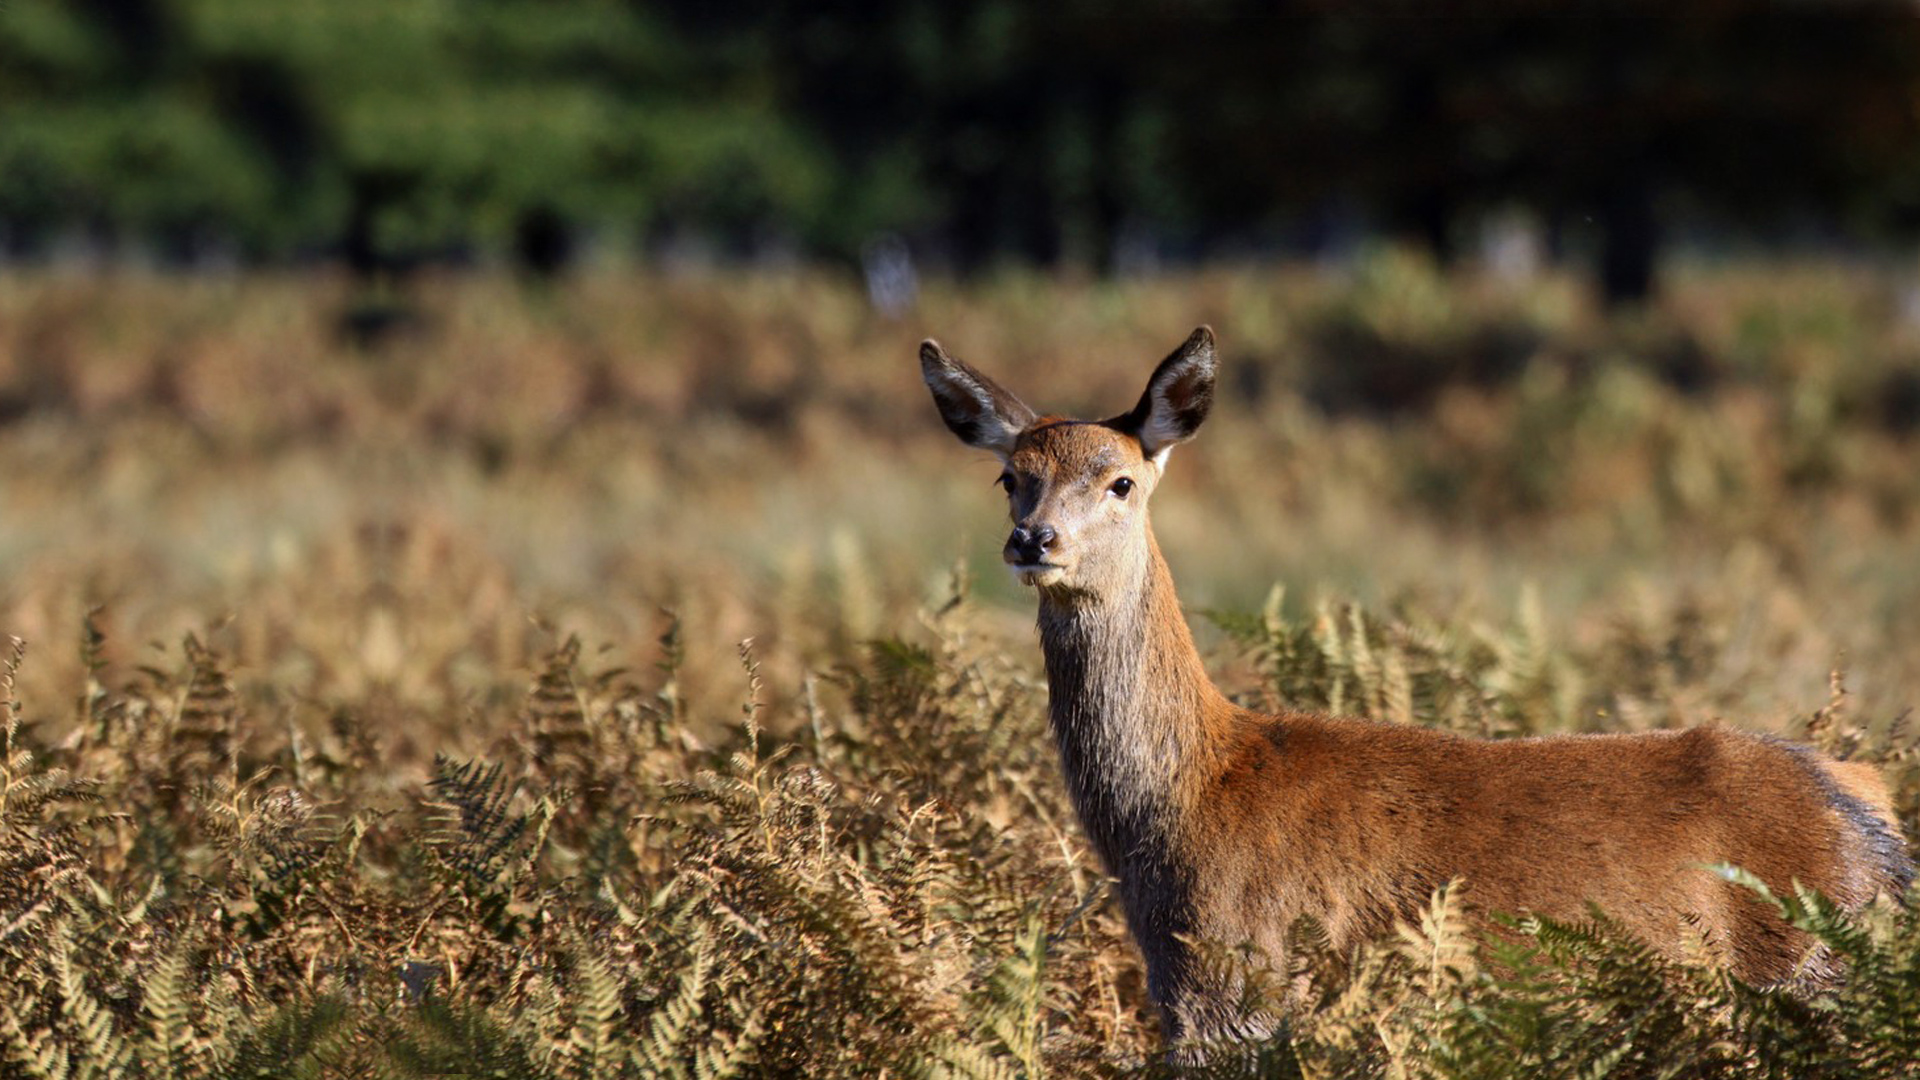 Deer in Warnham, West Sussex